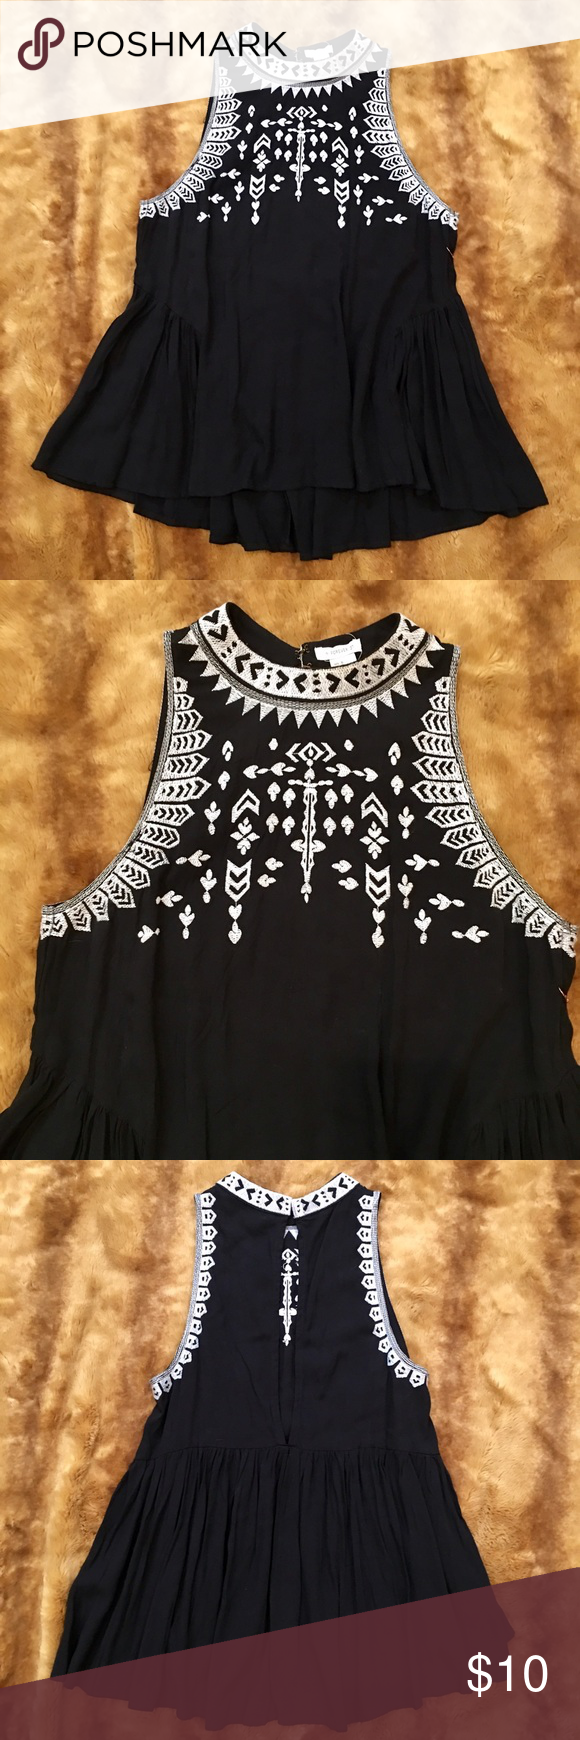 Black Embroidered Boho Blouse NWT! Never been worn! How cute is this top?! I love the cut and the embroidery 💞 Back neck closure with two eye hooks. Narrow peek a boo back. 100% Rayon. Size Small. I go between a Small and a Medium and I can wear it. Will be adorable with white denim pants😍 Wear a bandeau top underneath 😜 Cover up with a denim jacket and you're good to go 💋 Forever 21 Tops Blouses